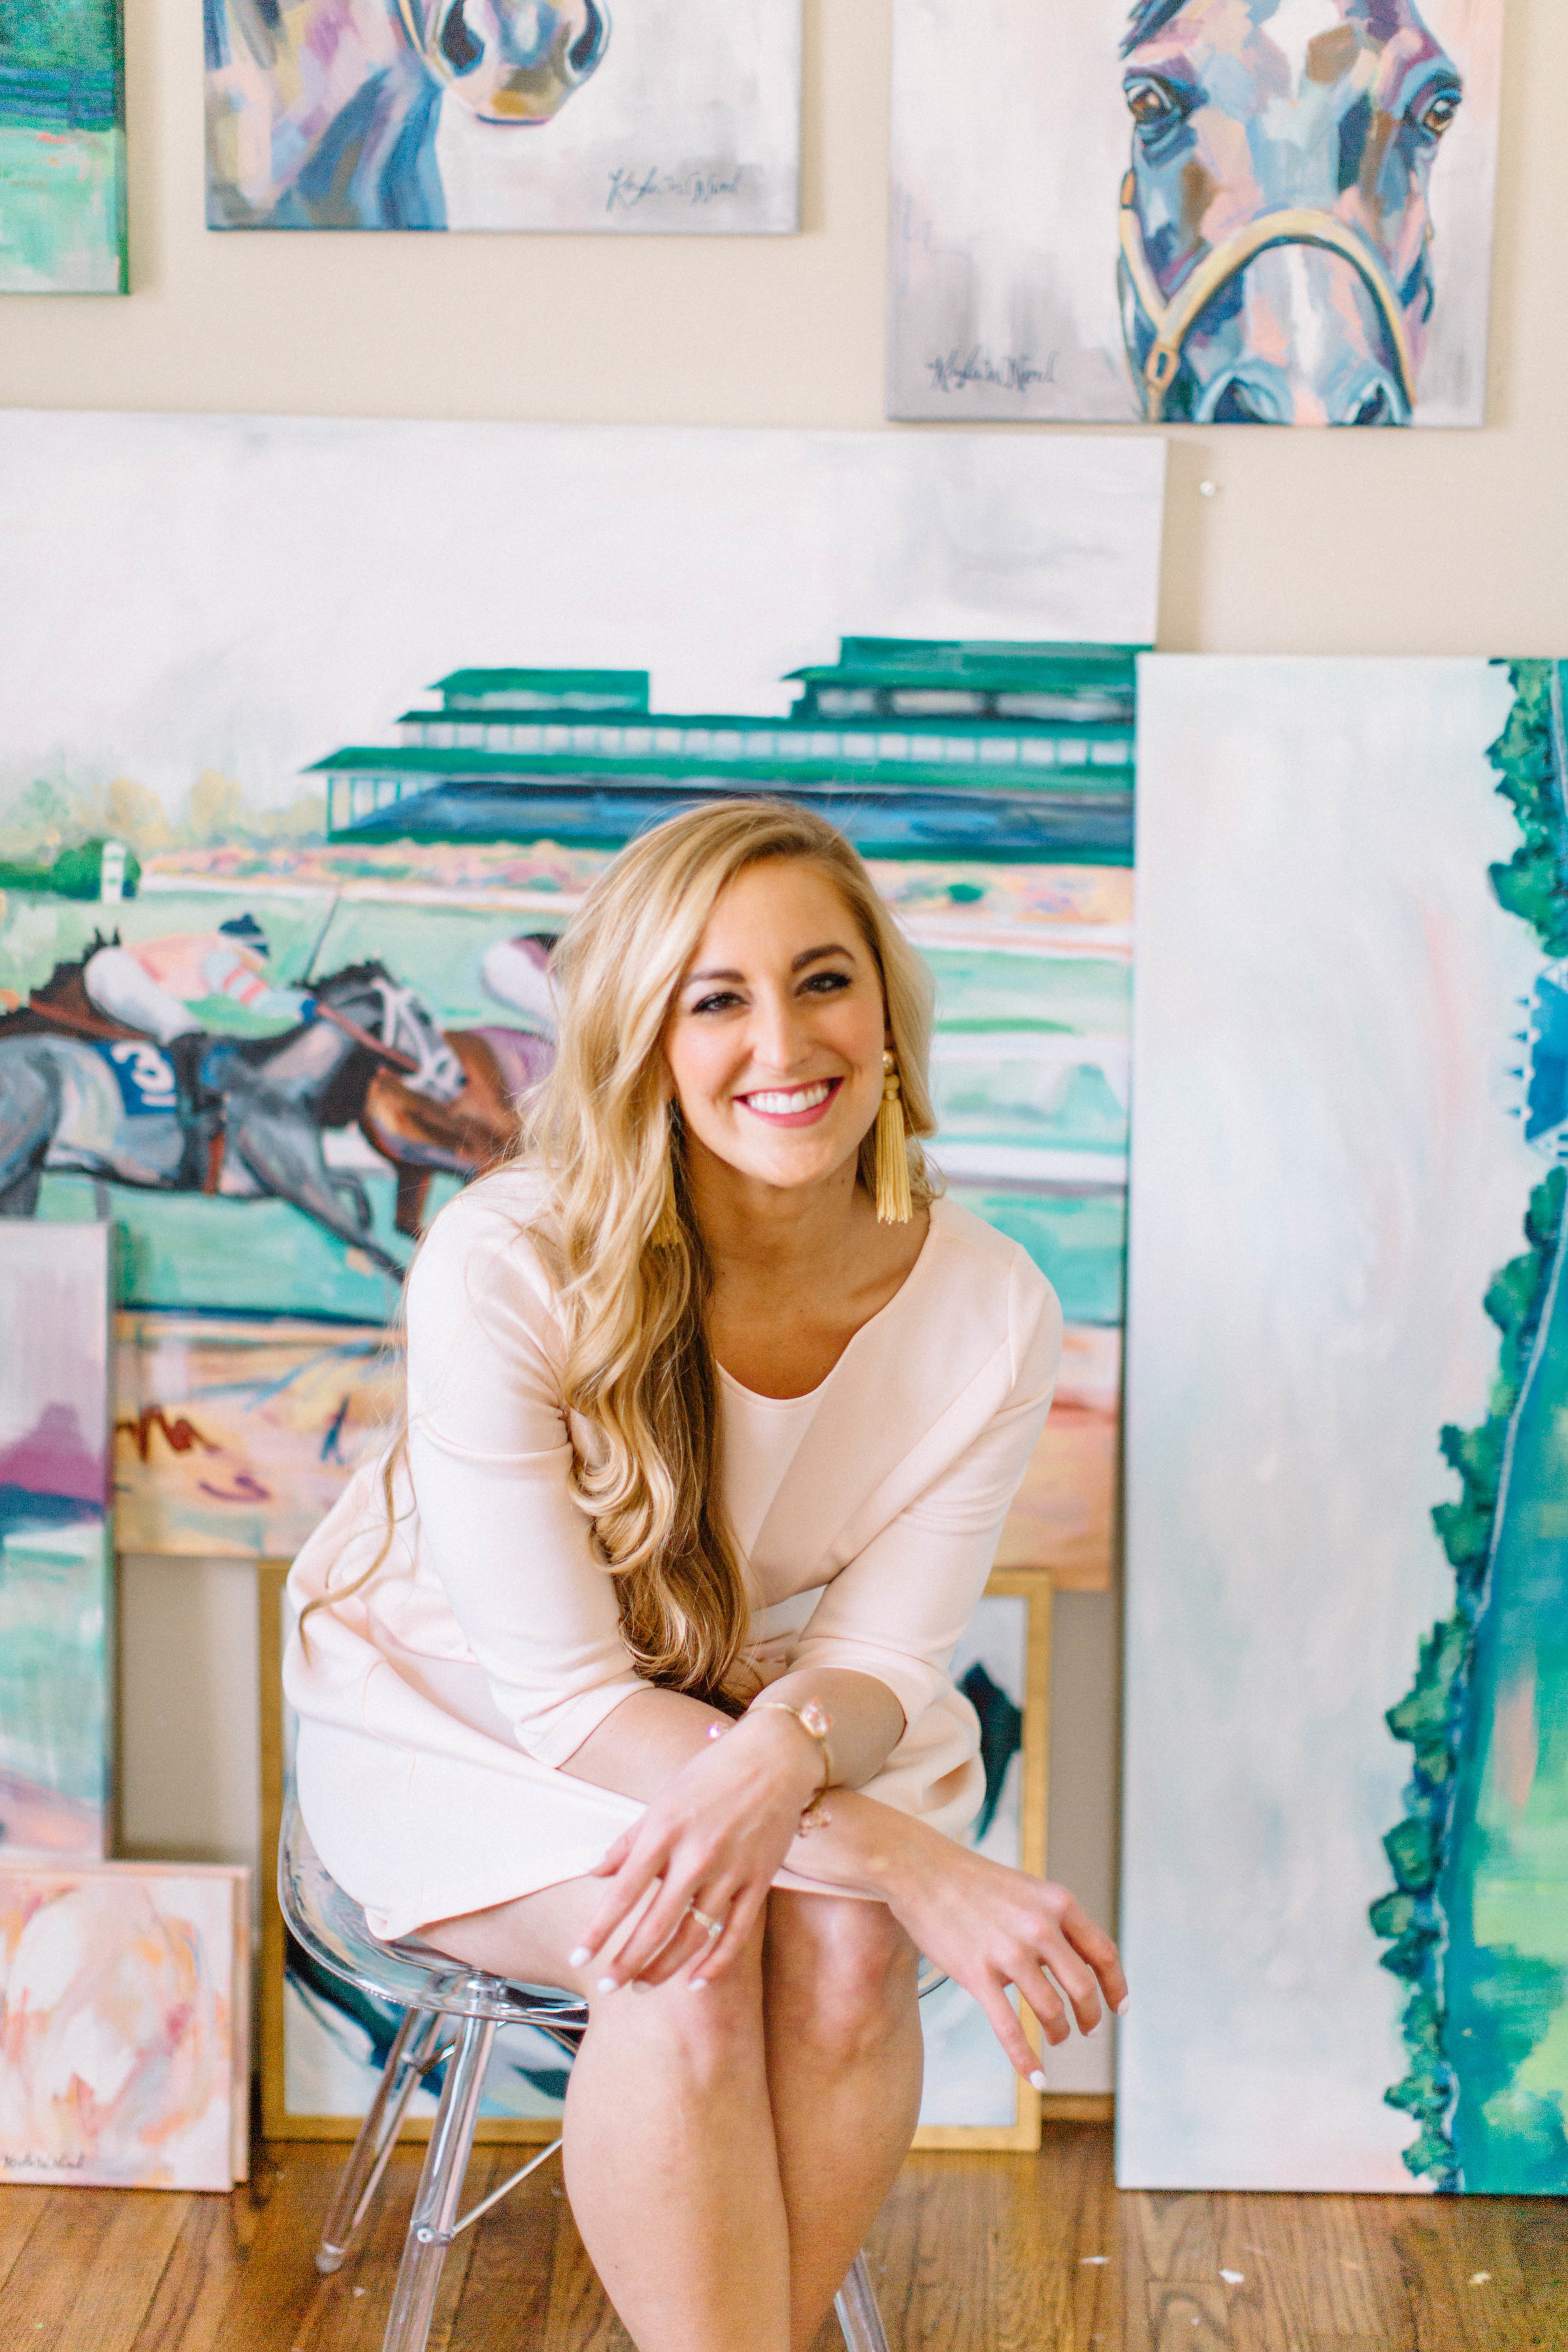 Well, HELLO!  I'm Kayla Weber Nord and I am an artist and event coordinator from Lexington, Kentucky! I paint Kentucky things, I love to decorate, I travel whenever I can, and I love taking pictures! I have always taken WAYYY too many, and kept journals (I don't ever remember anything if I don't)... so this is my place to put everything and share my experiences with you all! This blog is a collection of my life and everything in between. Follow along if you would like!